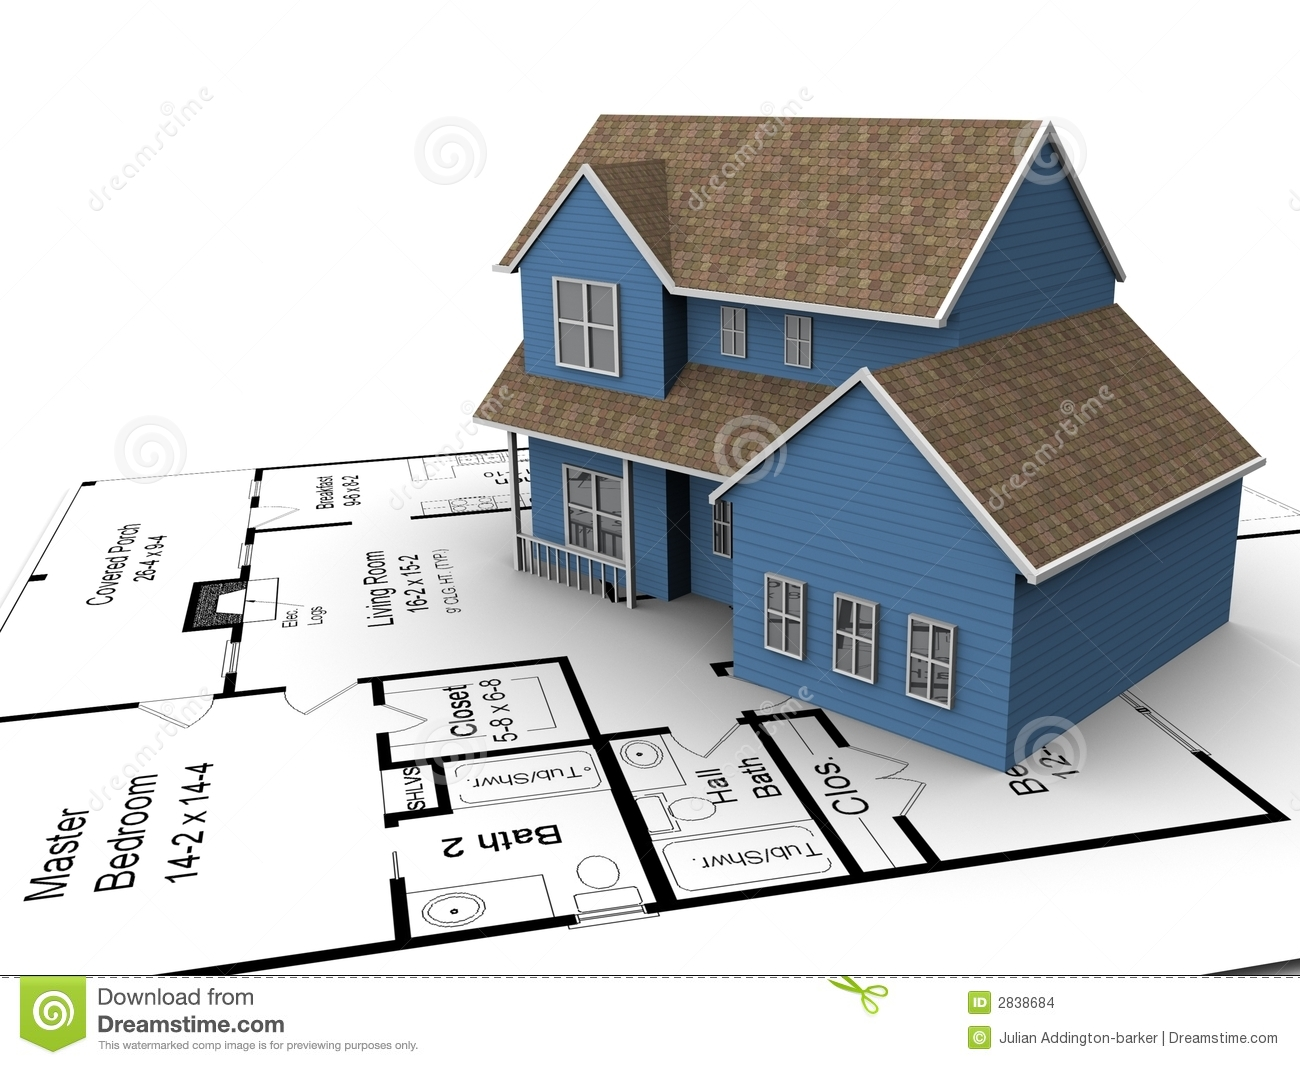 New house plans stock illustration image of design for New house plan design